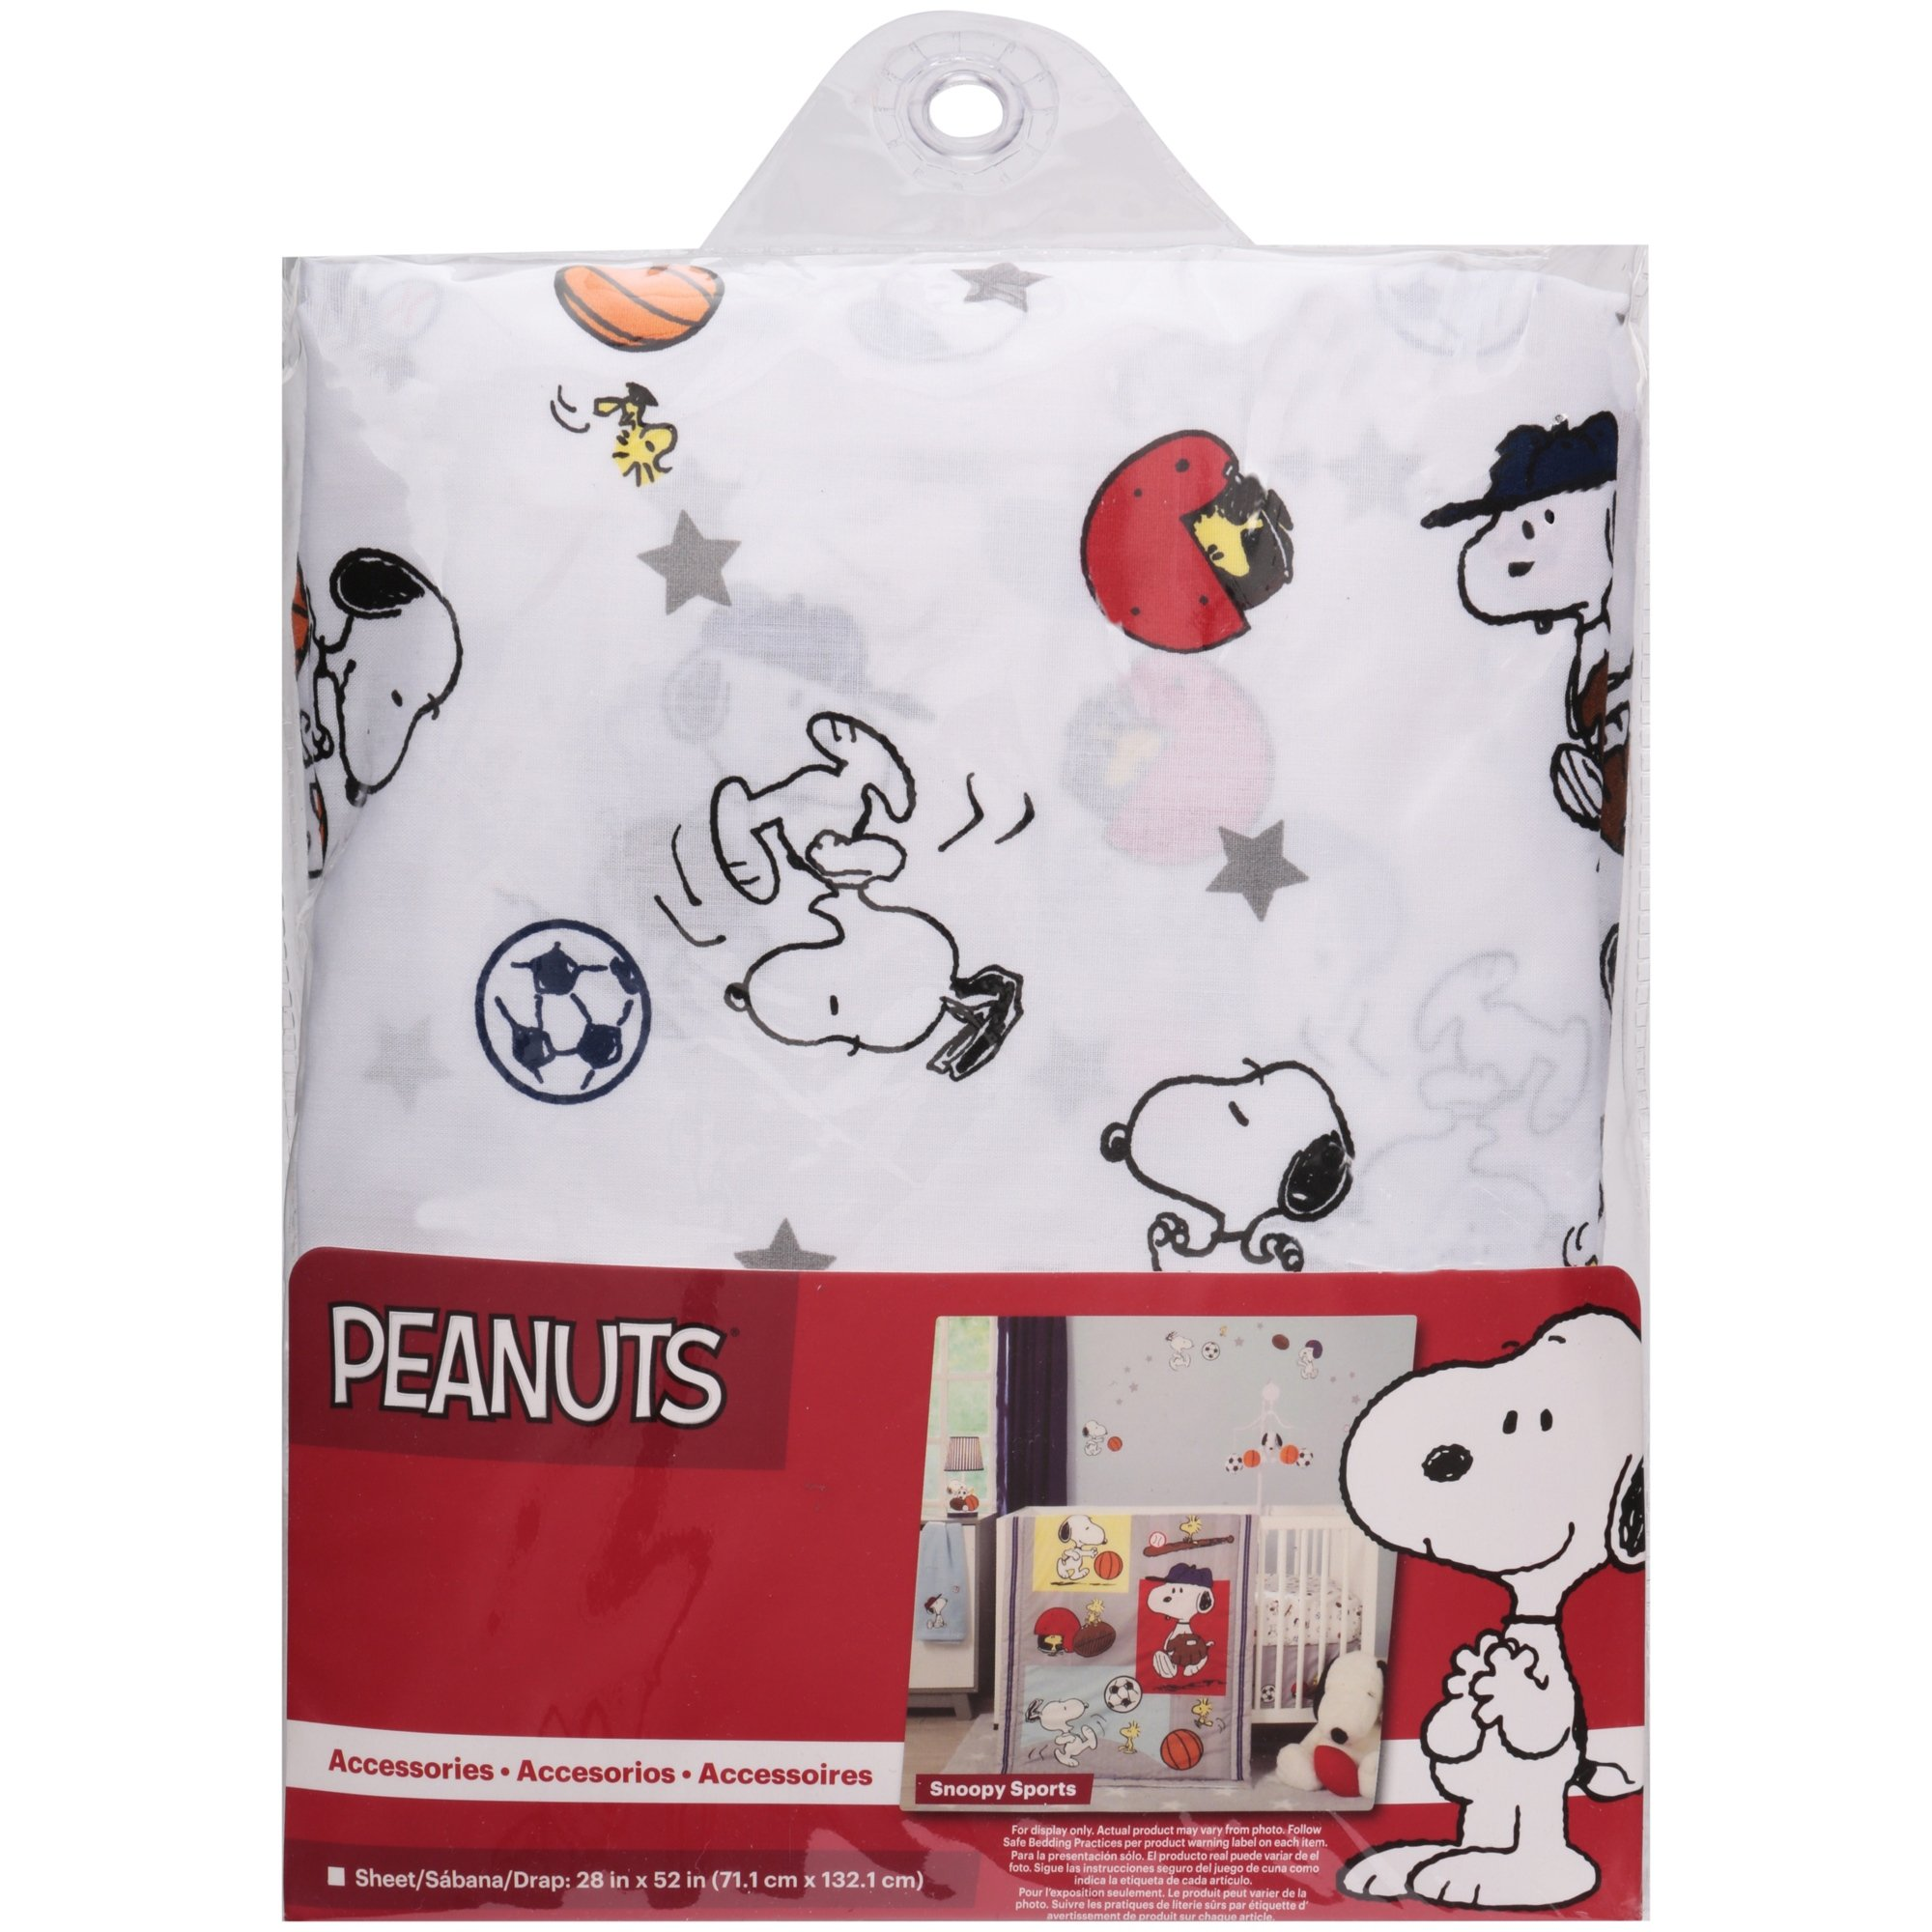 HT Beautiful White Red Blue Snoopy Sports Fitted Crib Sheet, Cartoon Themed Nursery Bedding, Infant Child Toddler Animal Animated Peanuts Ball Soccer Cute Adorable, Cotton Polyester